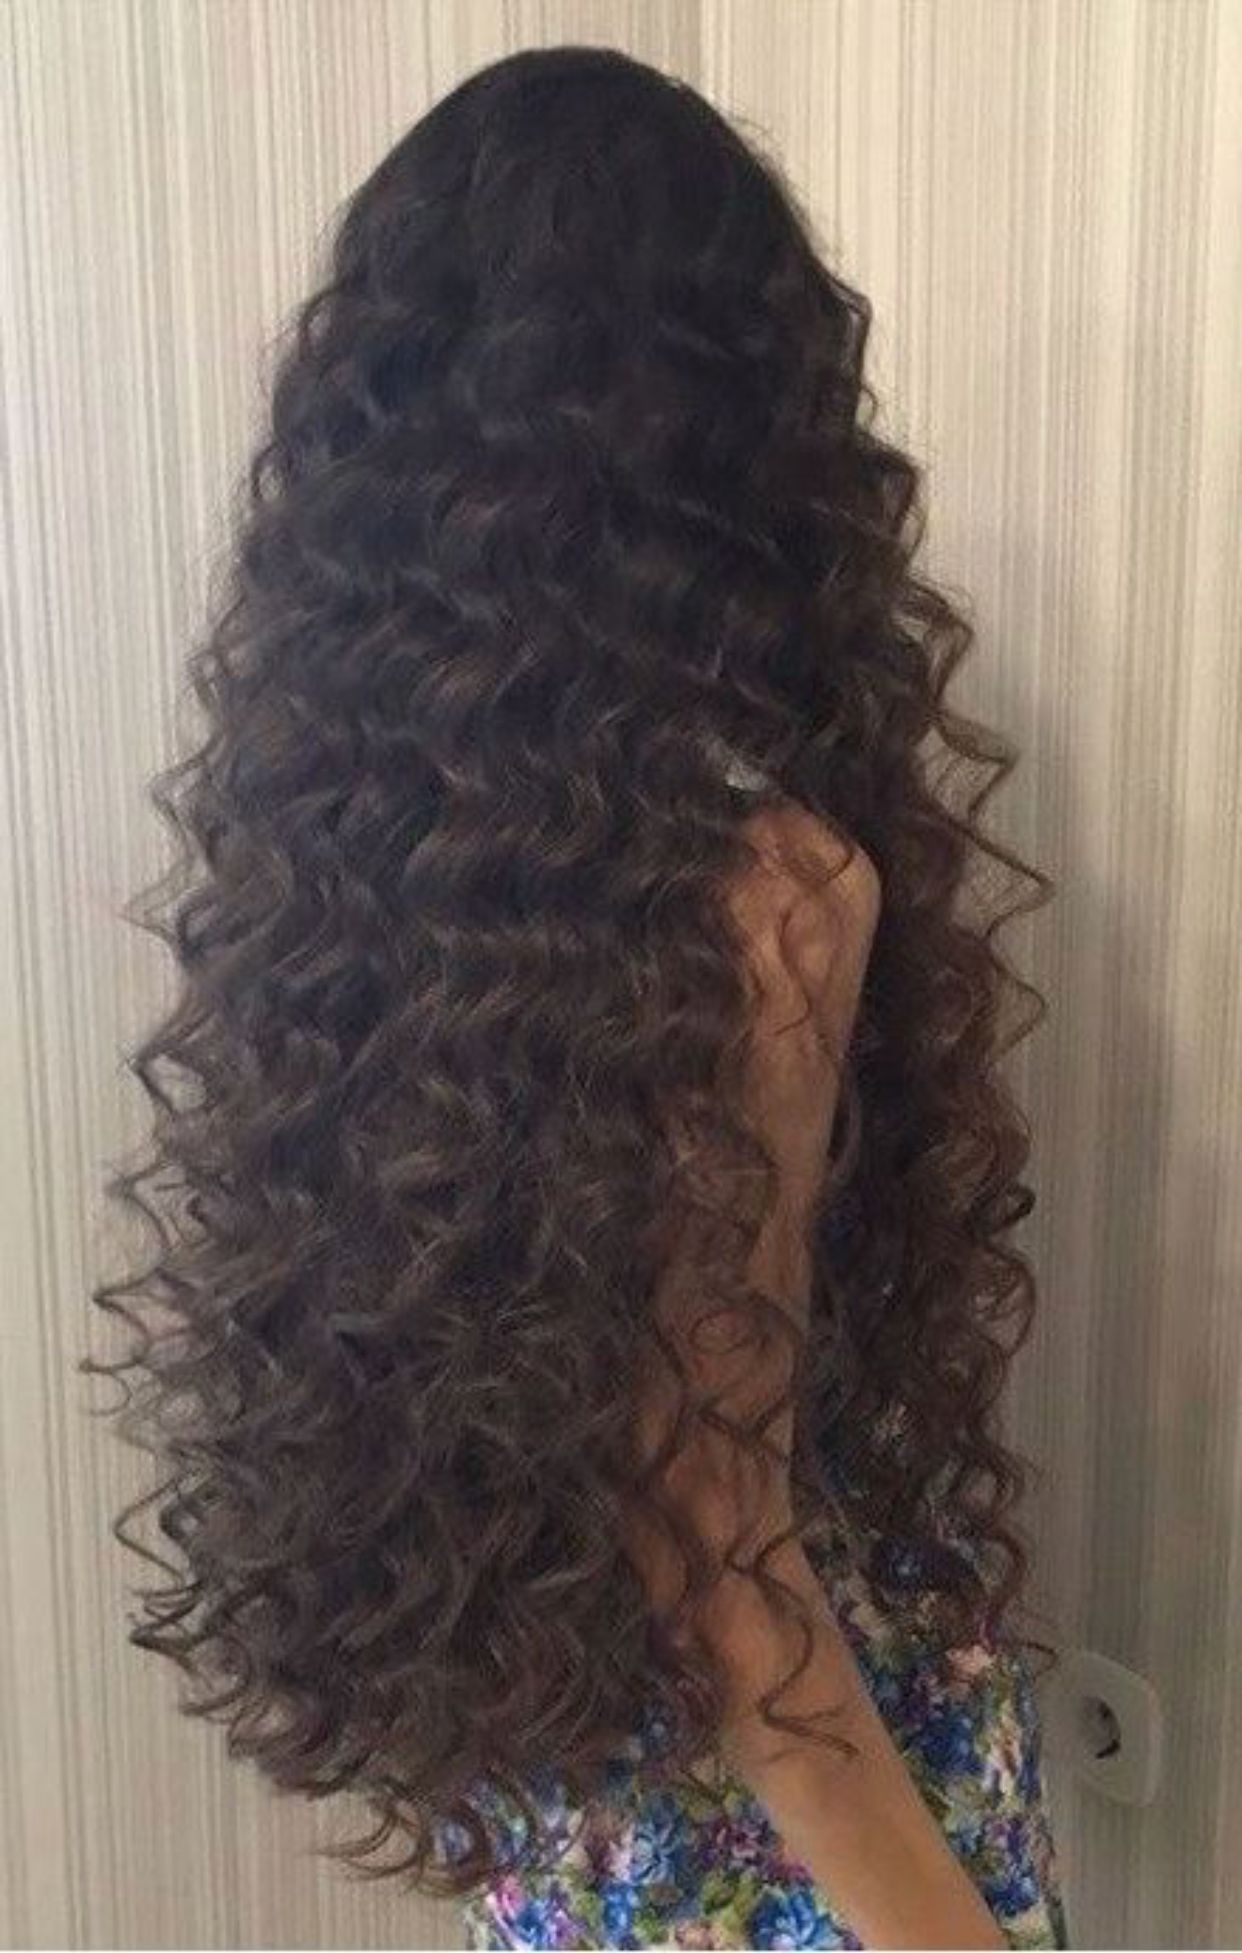 Pin By Crystal Connolly On Hair Stuff Long Hair Styles Thick Hair Styles Wig Hairstyles